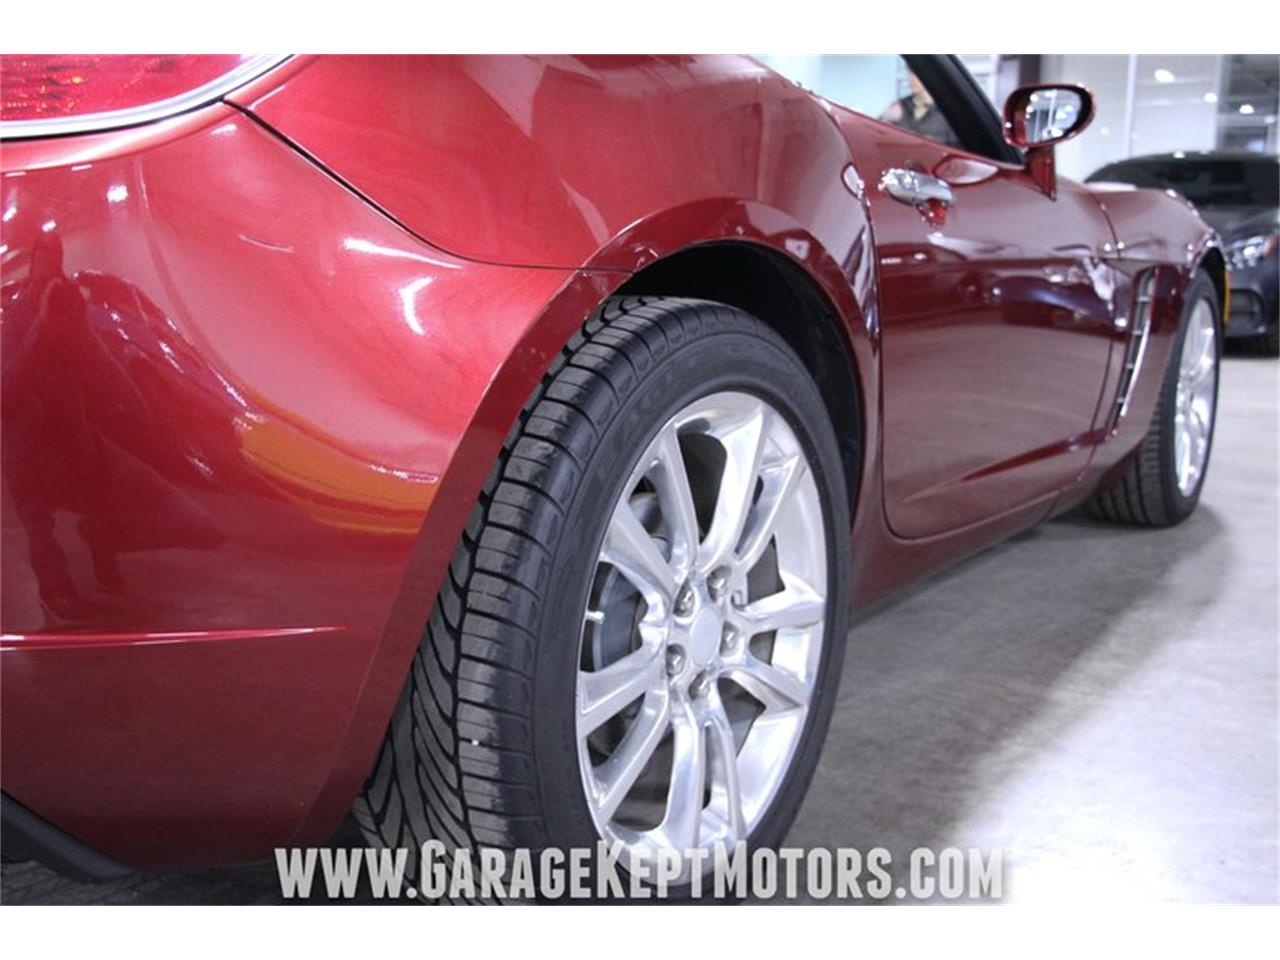 2009 Saturn Sky for sale in Grand Rapids, MI – photo 34